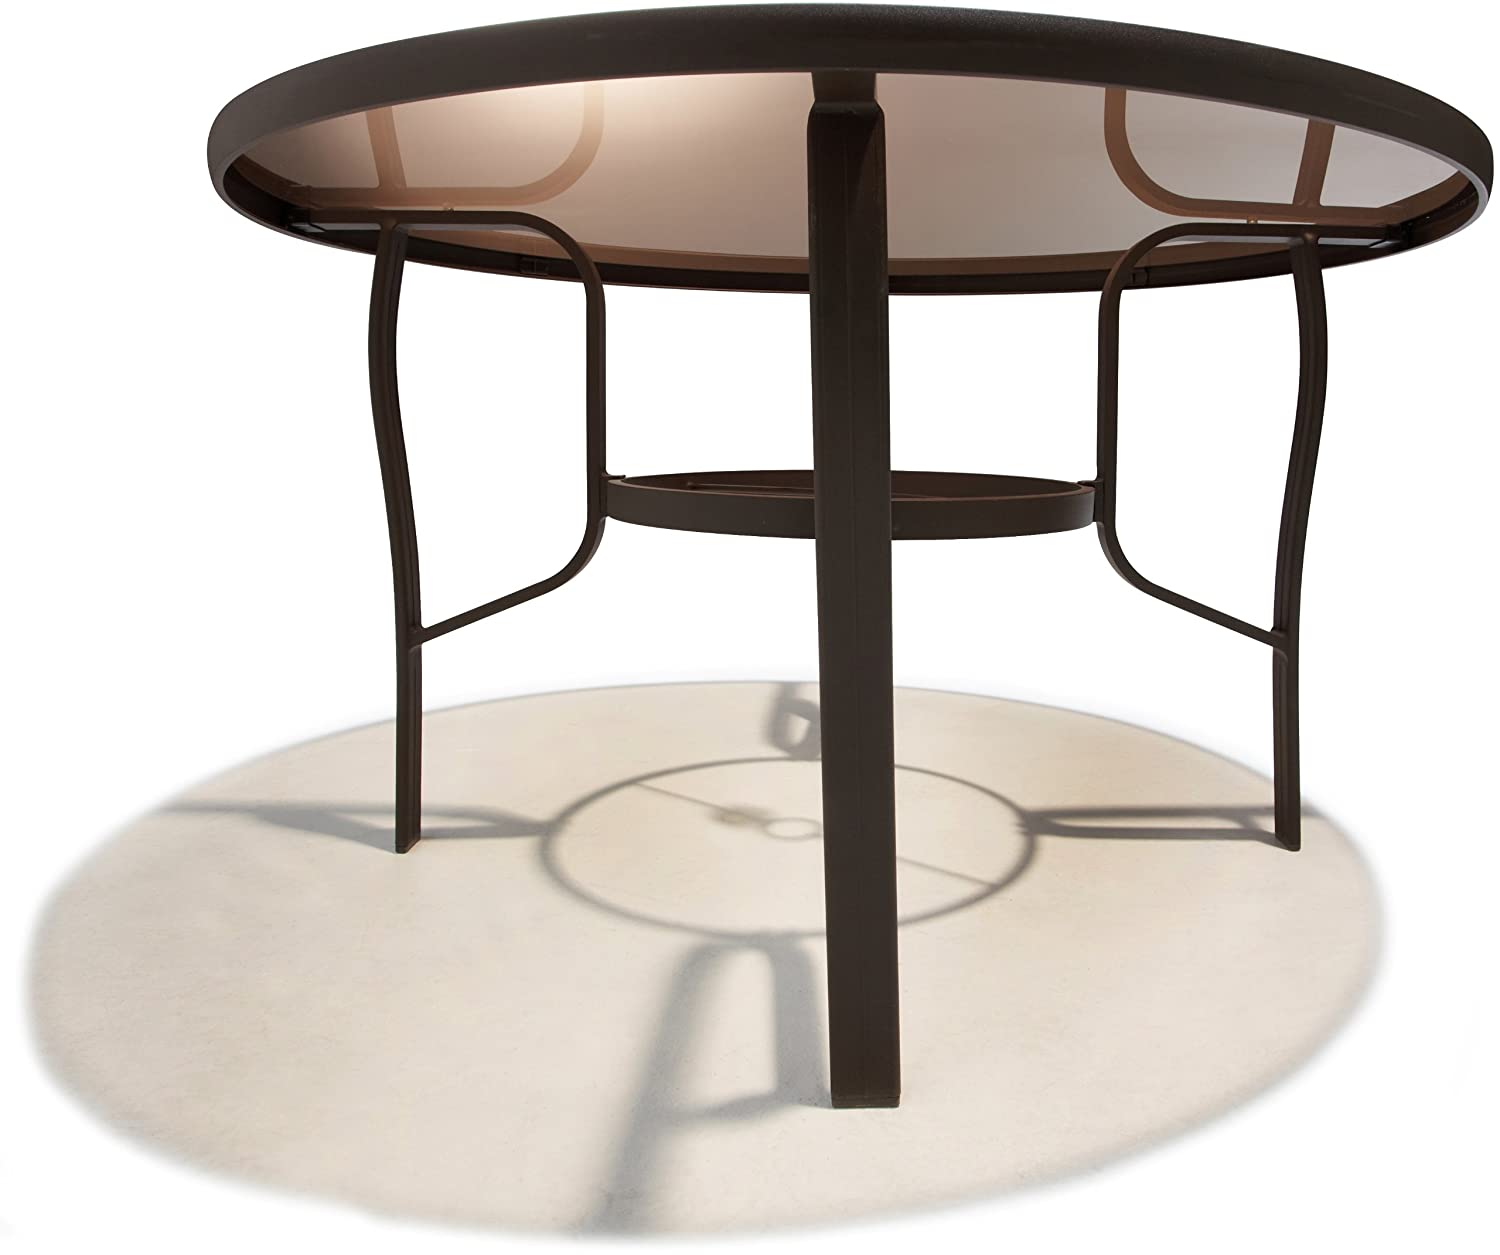 48in round dining table outdoor umbrella hole aluminum tempered glass top brown ebay. Black Bedroom Furniture Sets. Home Design Ideas